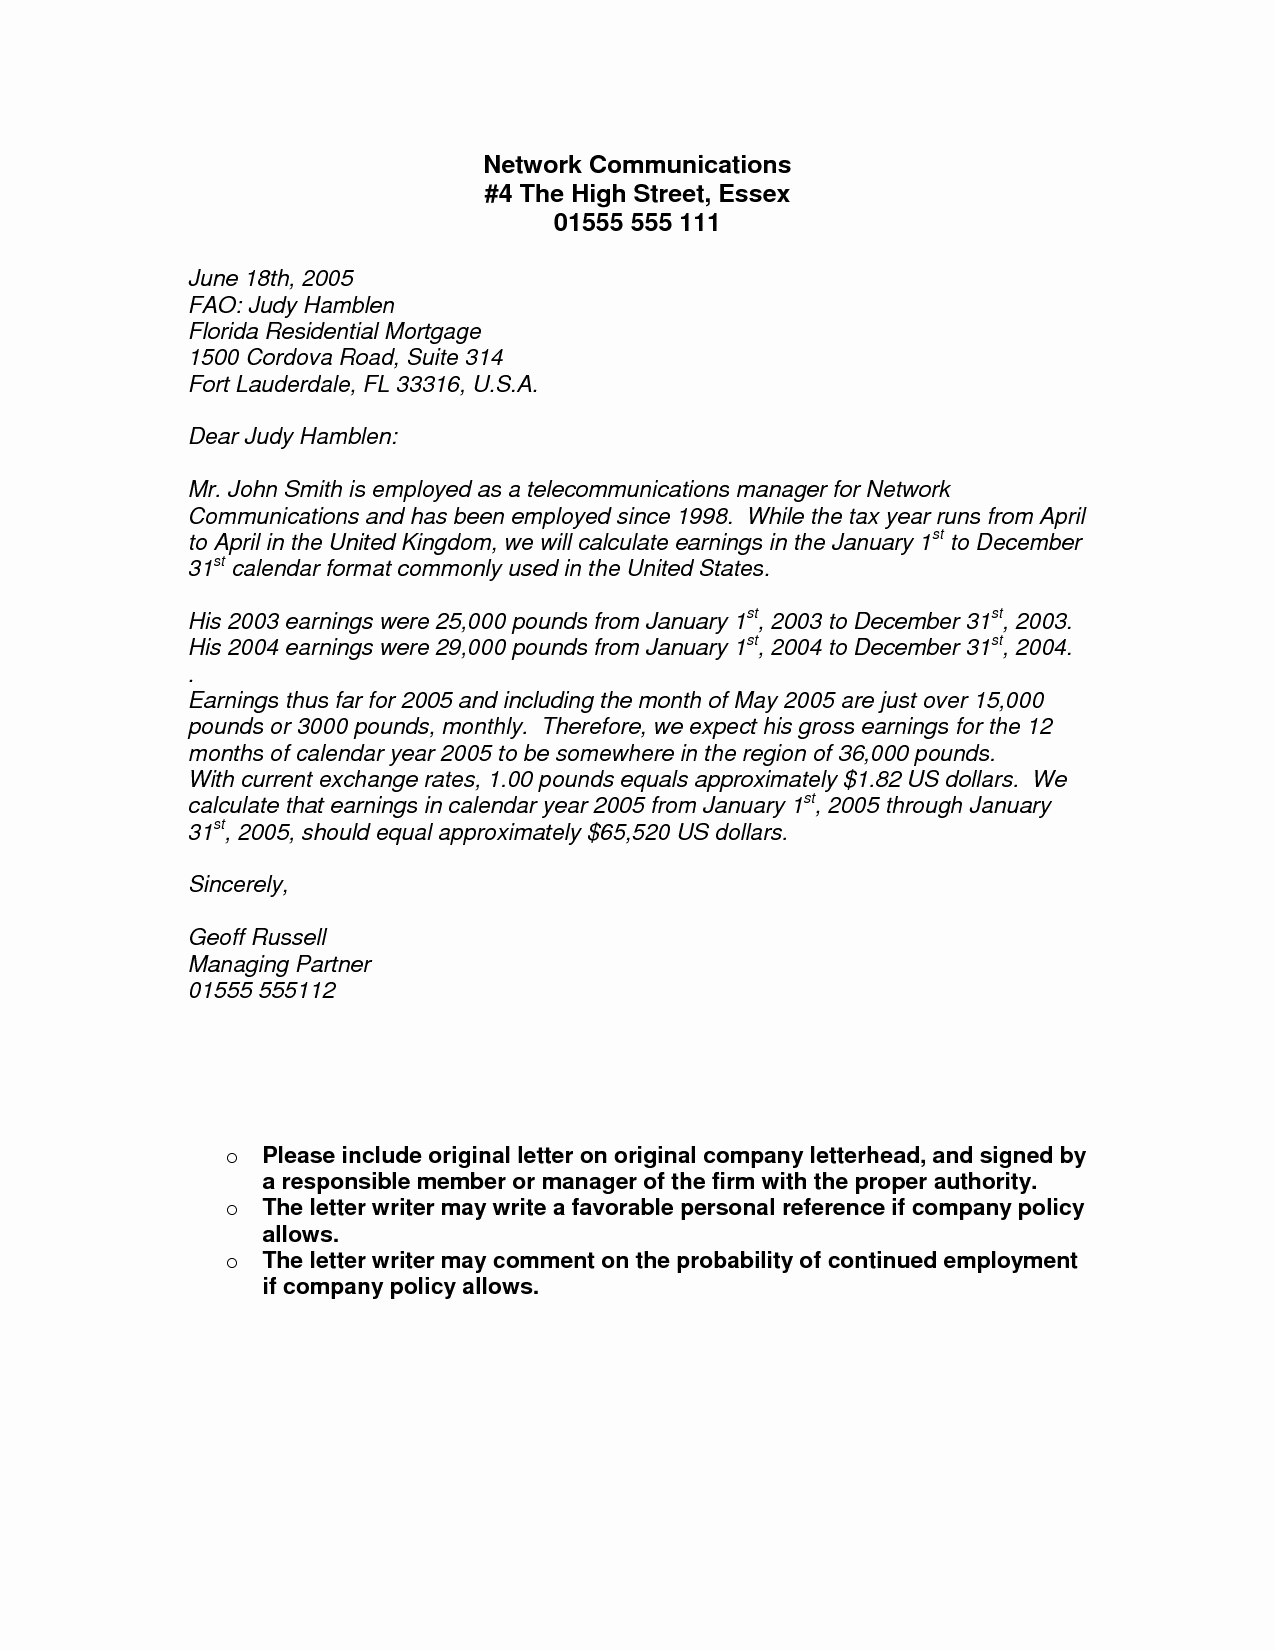 Proof No Income Letter Sample New Proof In E Letter From Employer Free Printable